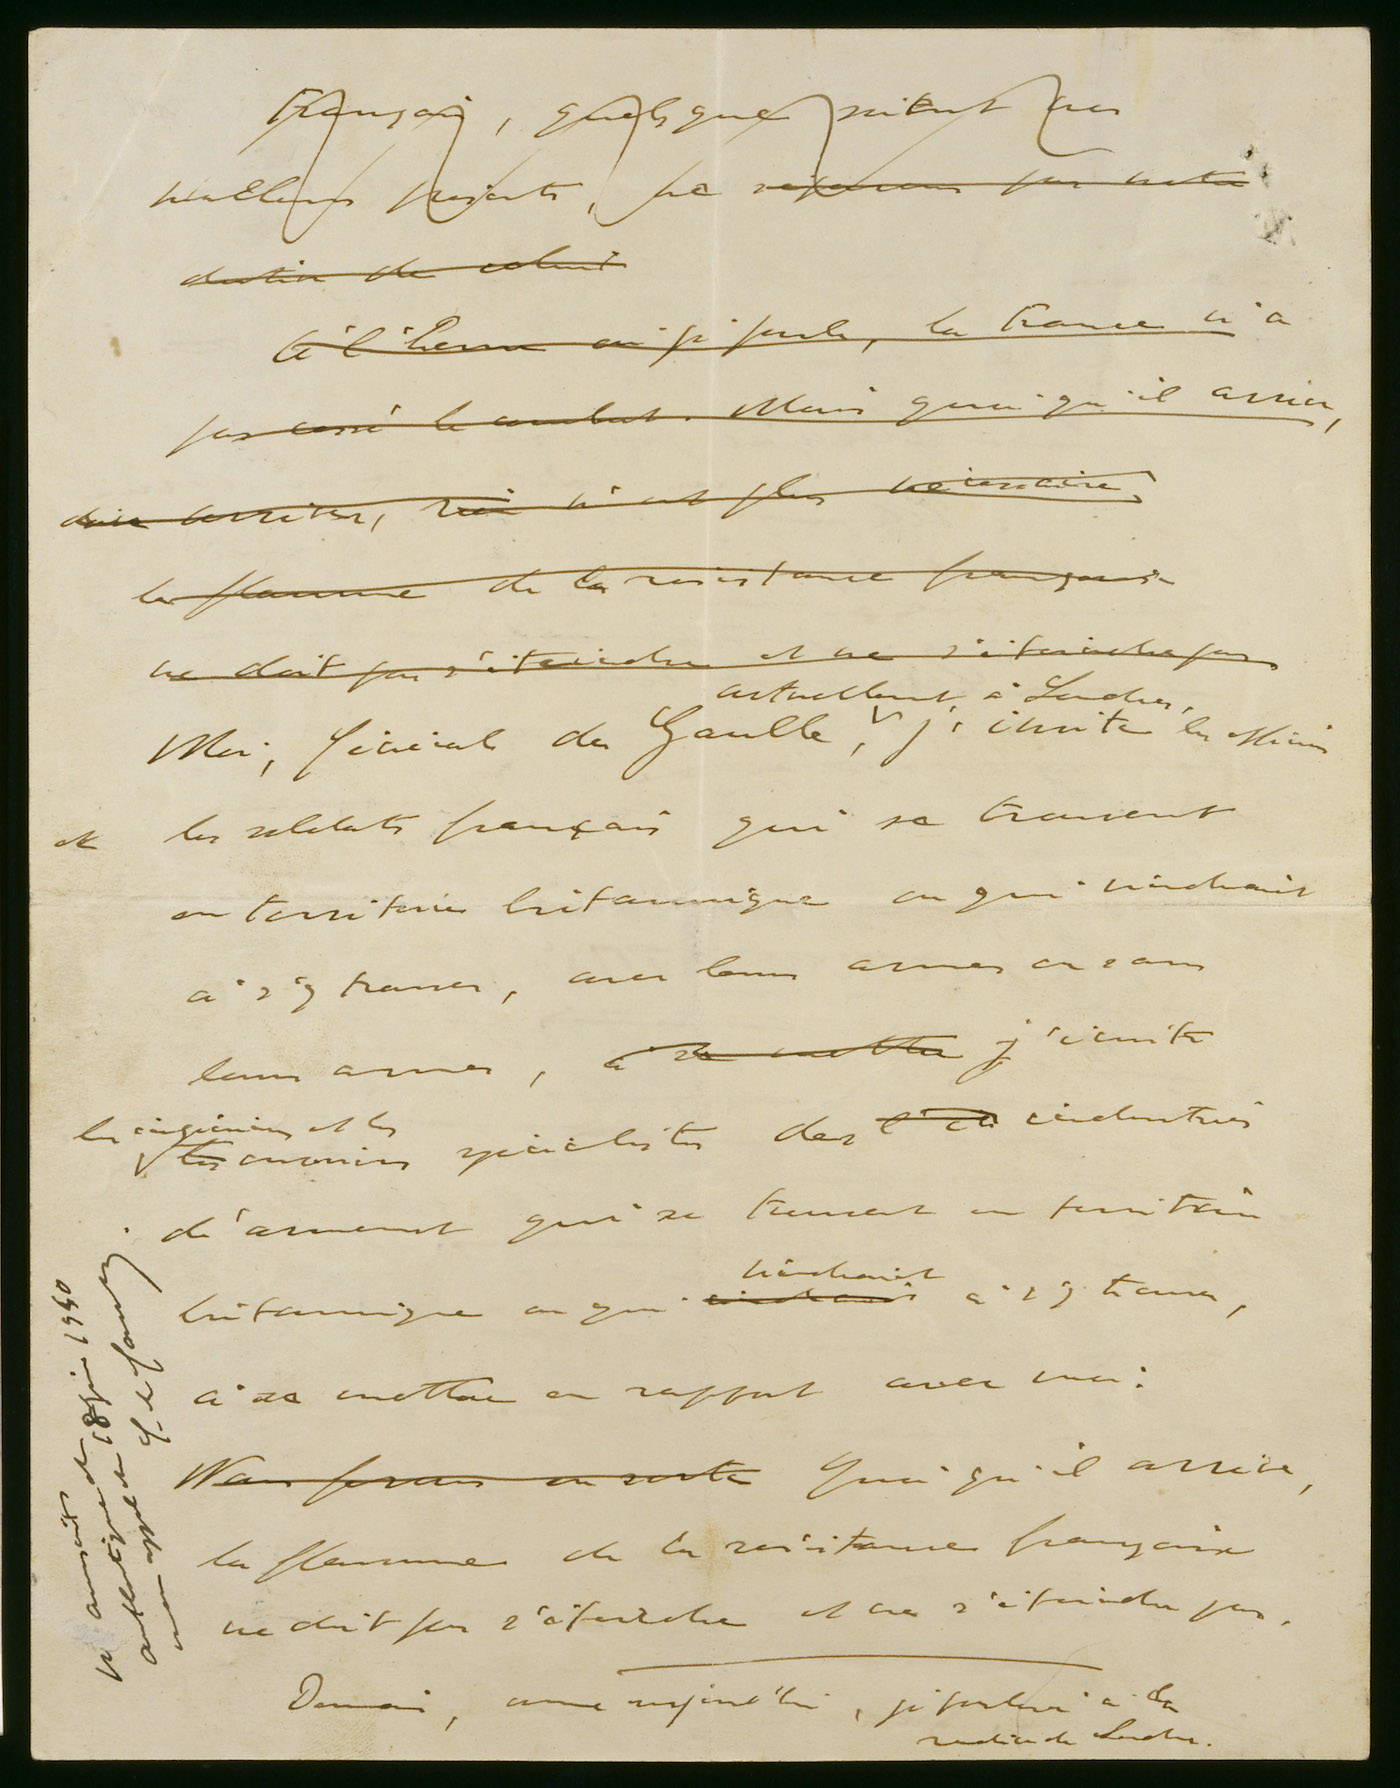 Une page du manuscrit de l'Appel du 18 juin authentifiée.